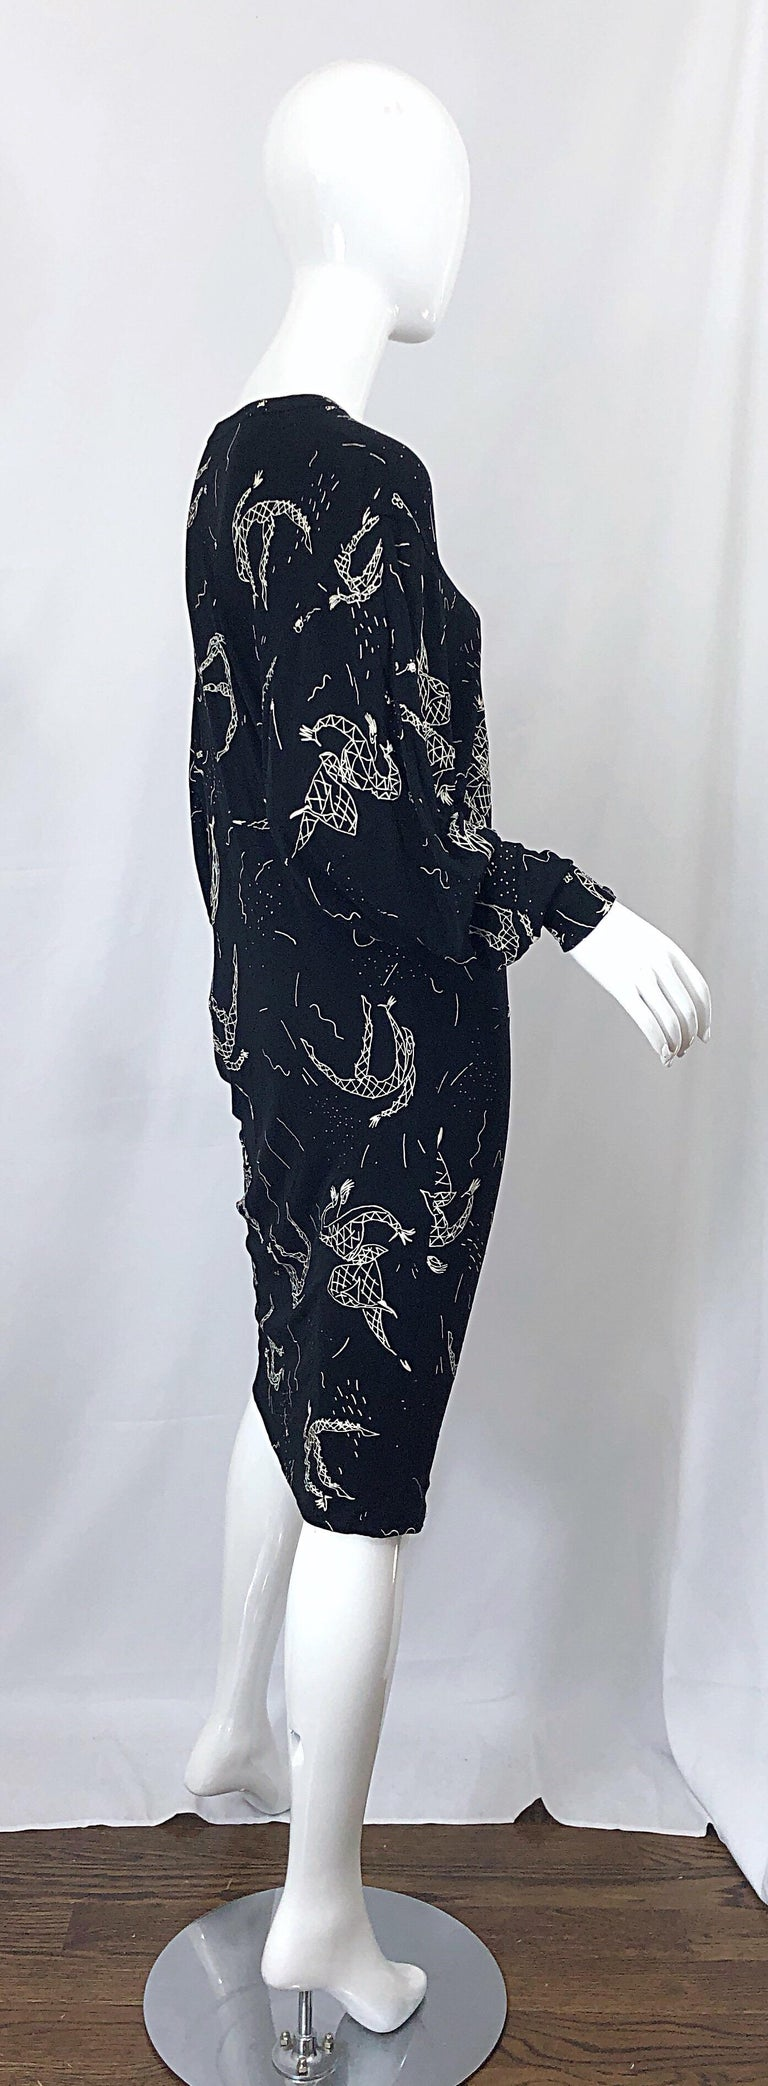 Amen Wardy 1980s Hand Painted Novelty Harlequin Print Black and White 80s Dress For Sale 9